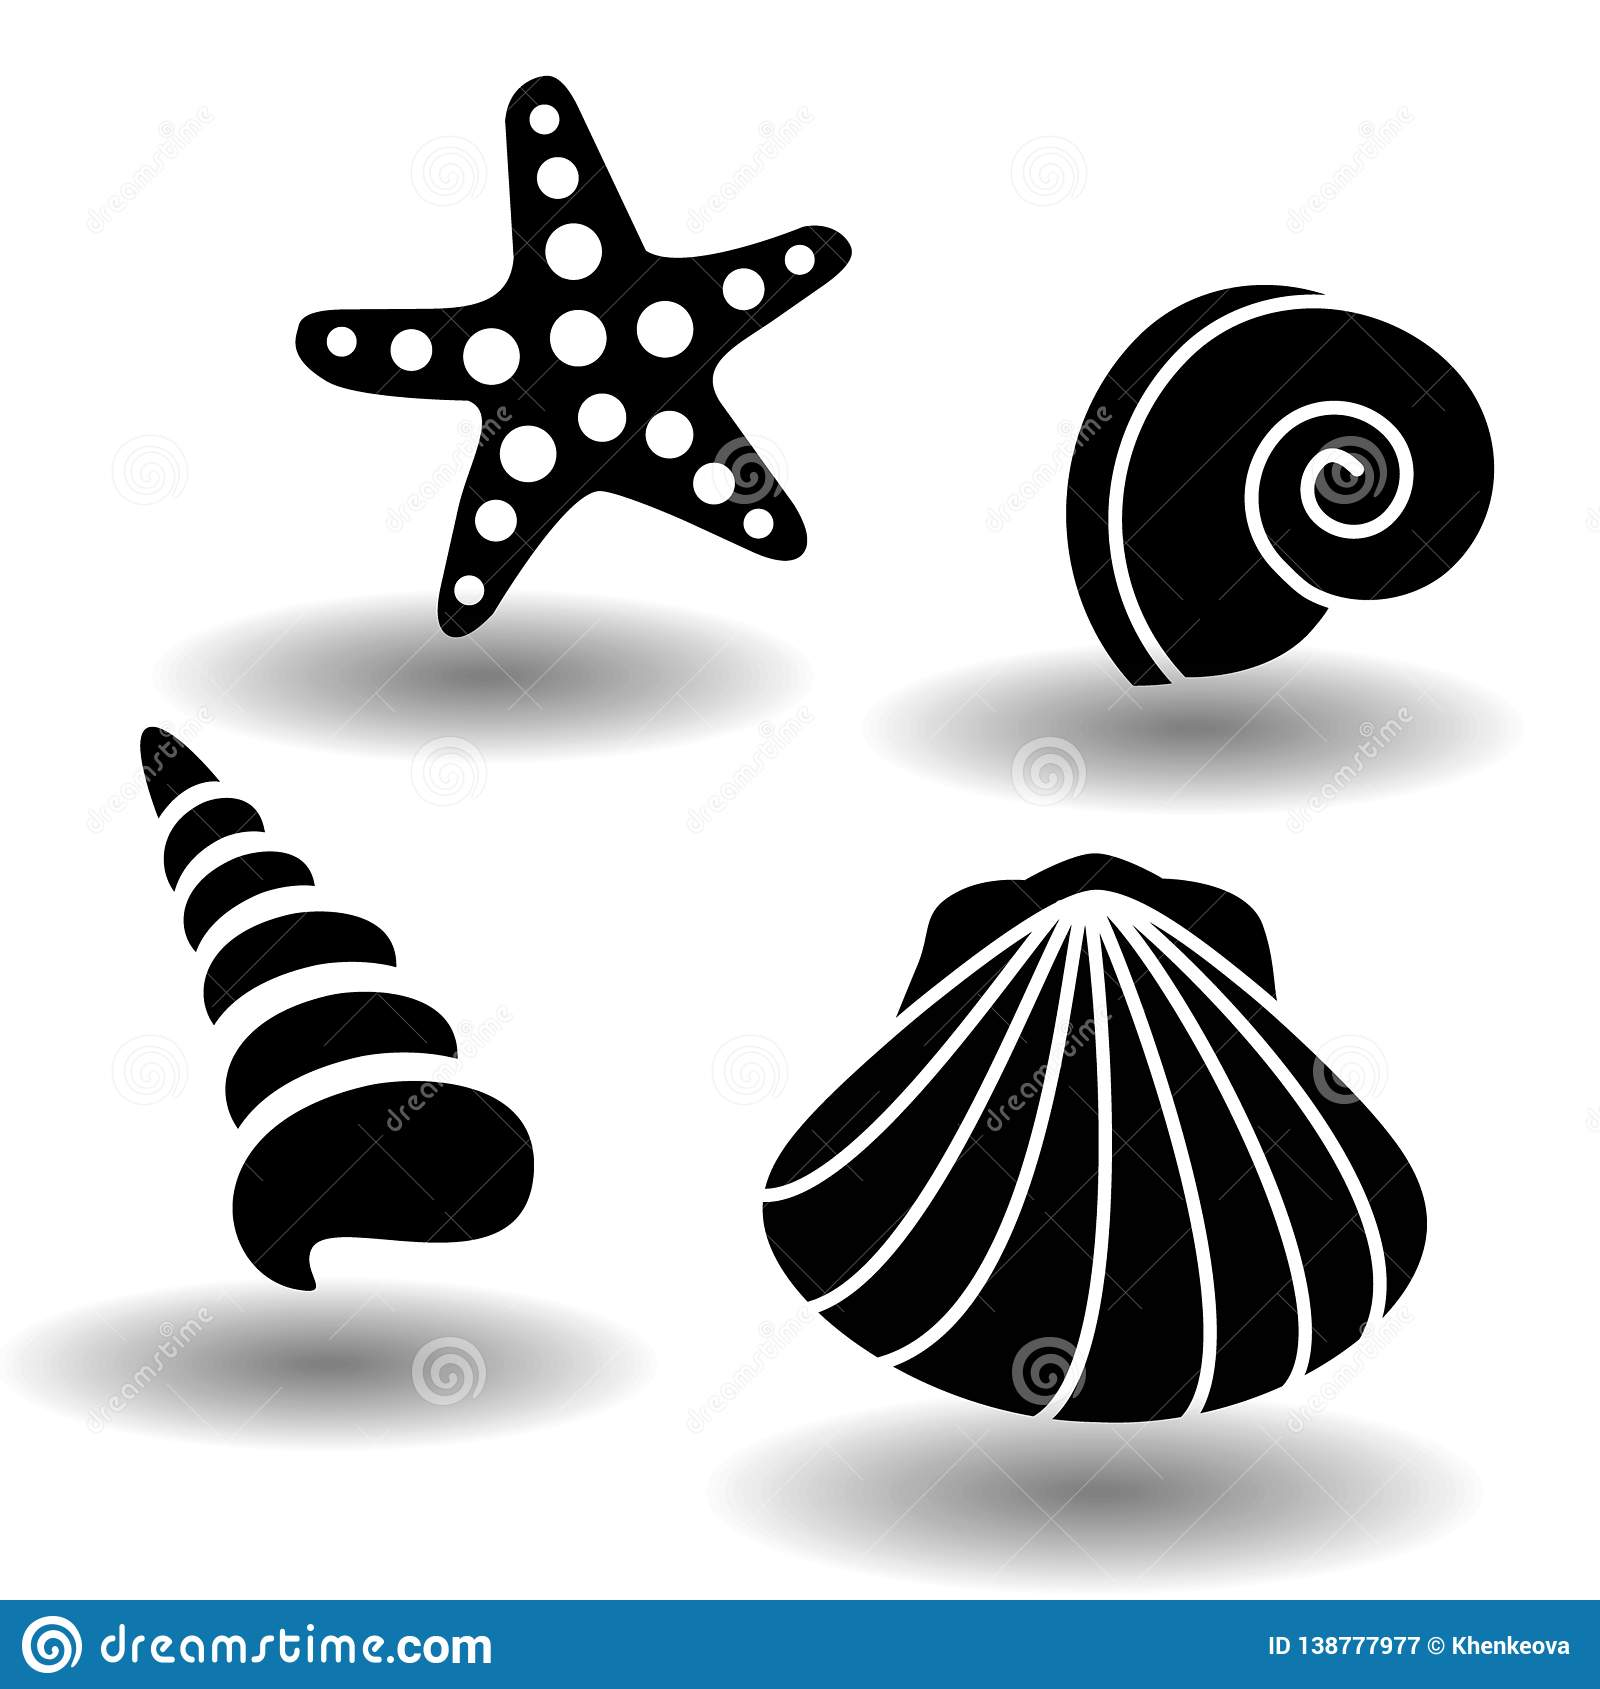 Black sea shells icon set, collection of seashell, clam, nautilus snail, spiral shell and starfish. Vector eps10